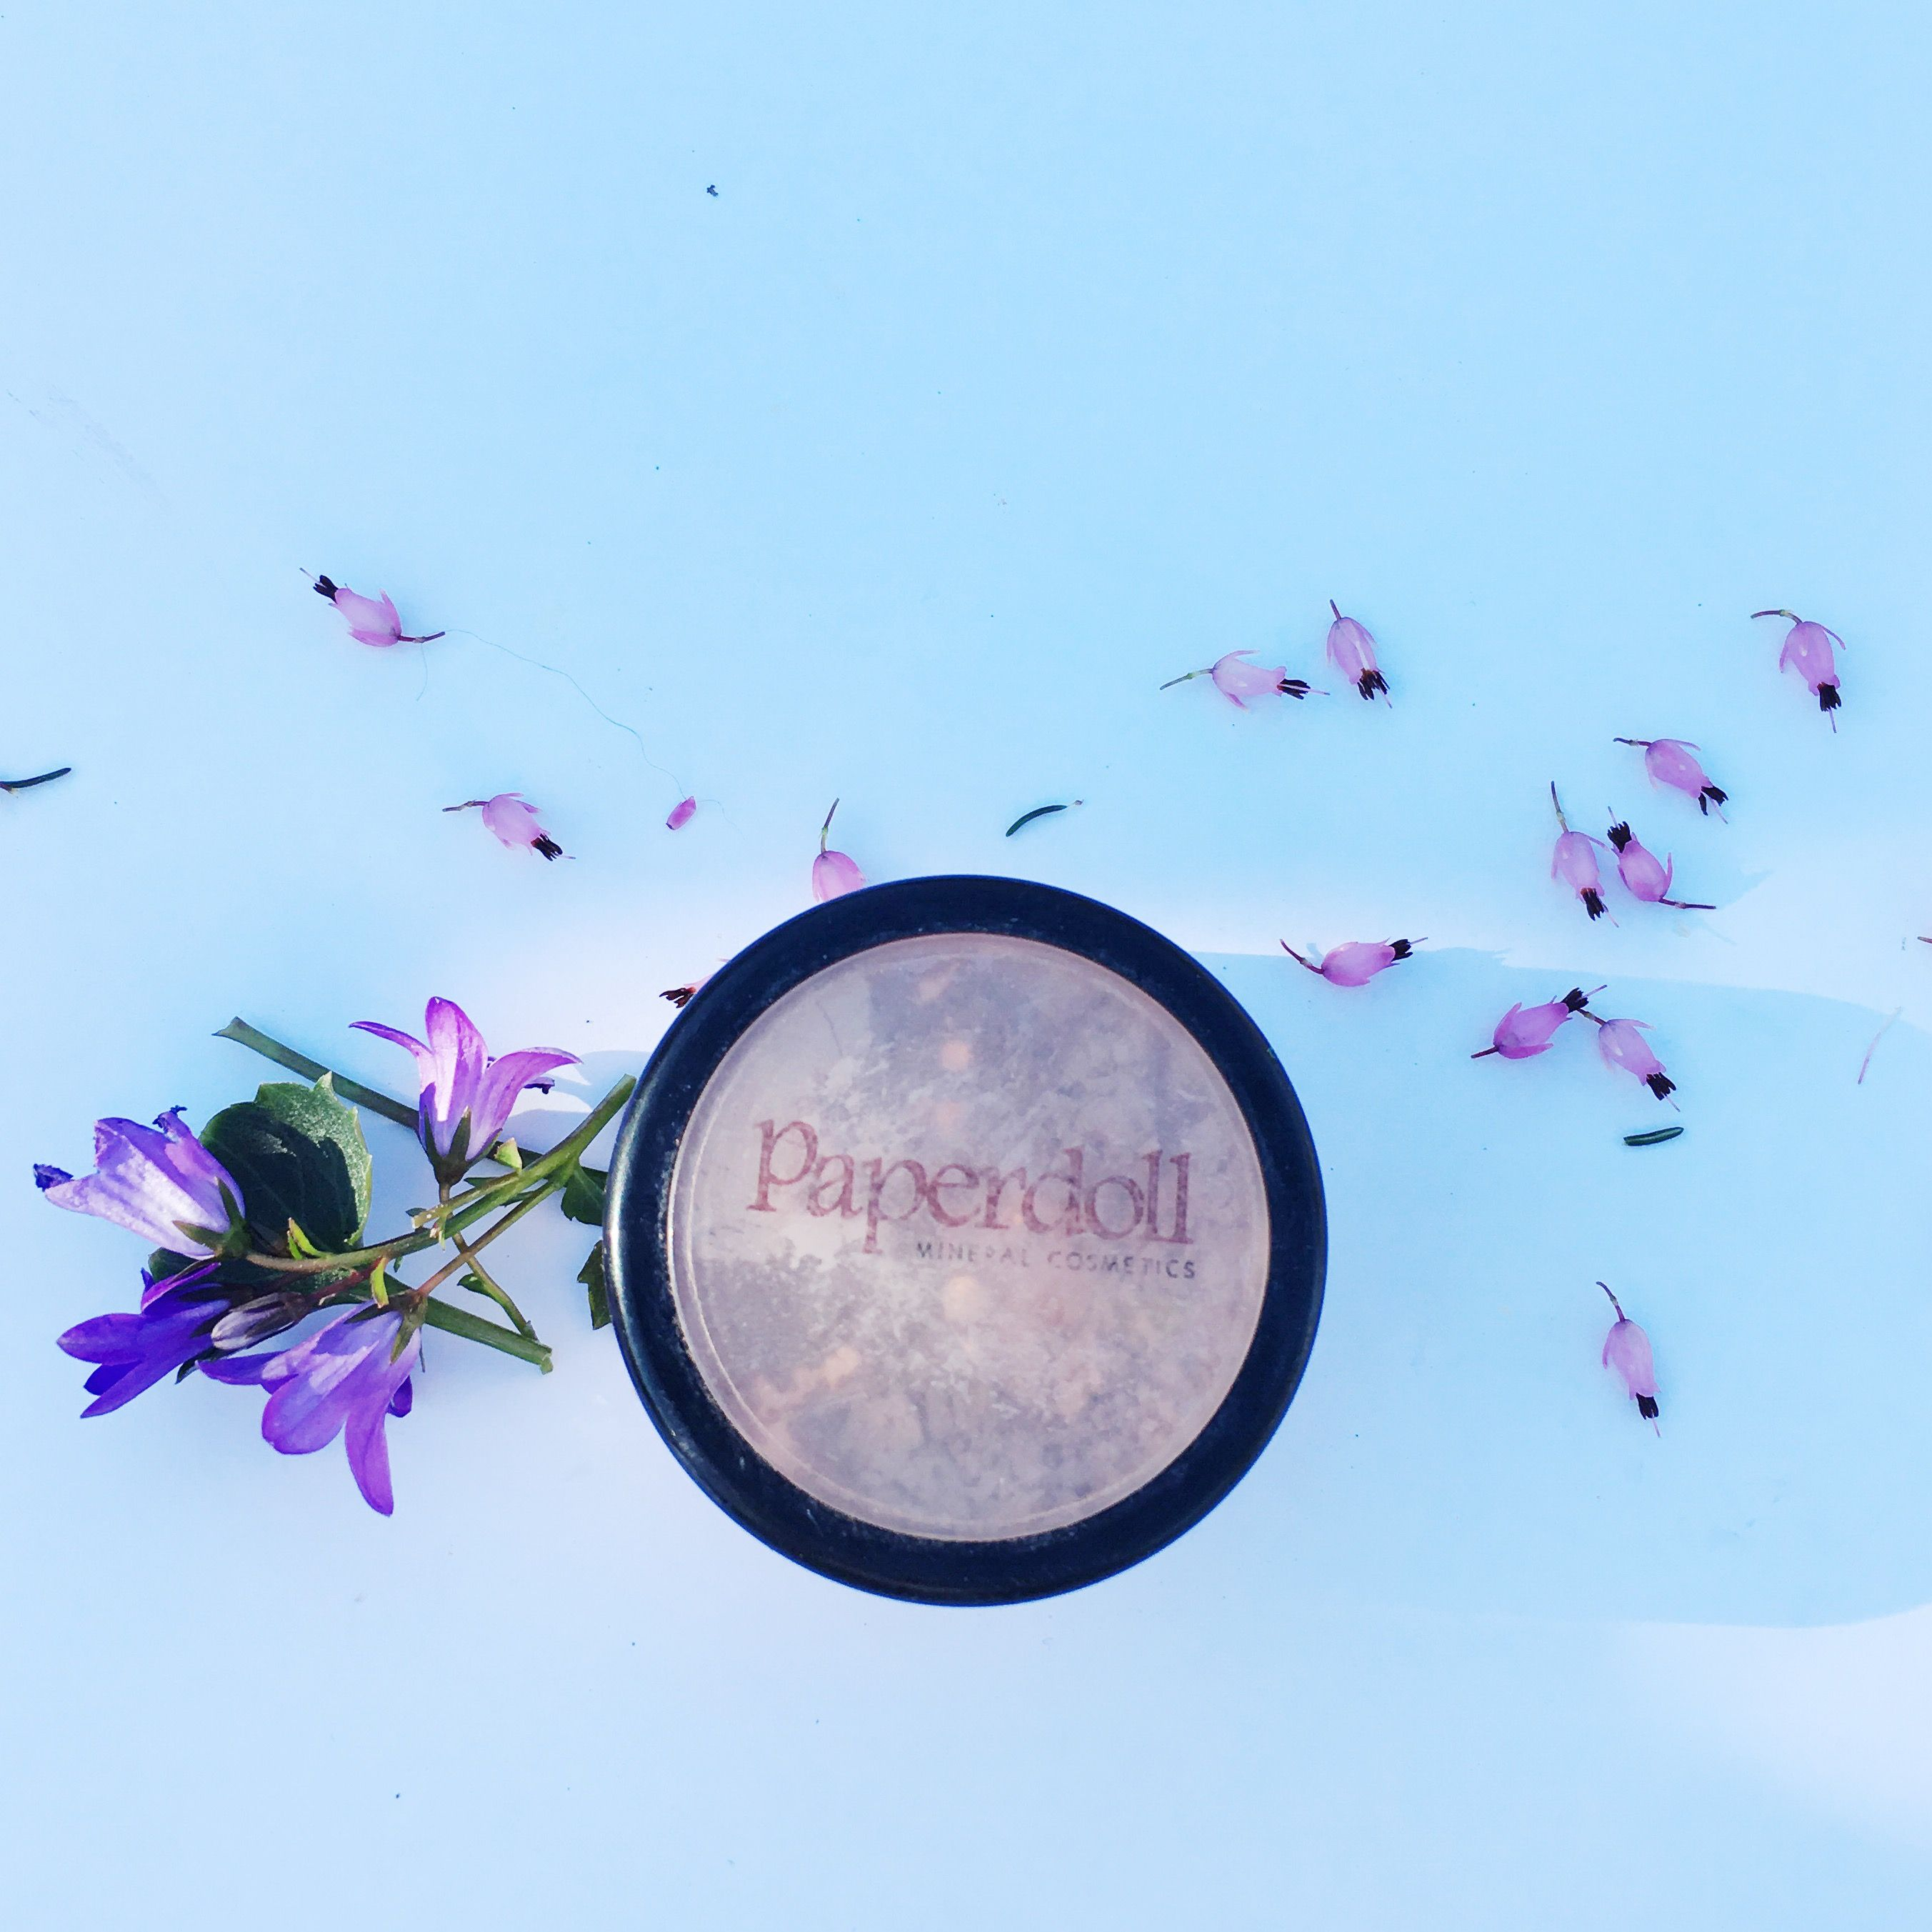 Paperdoll loose mineral powder. An all natural and